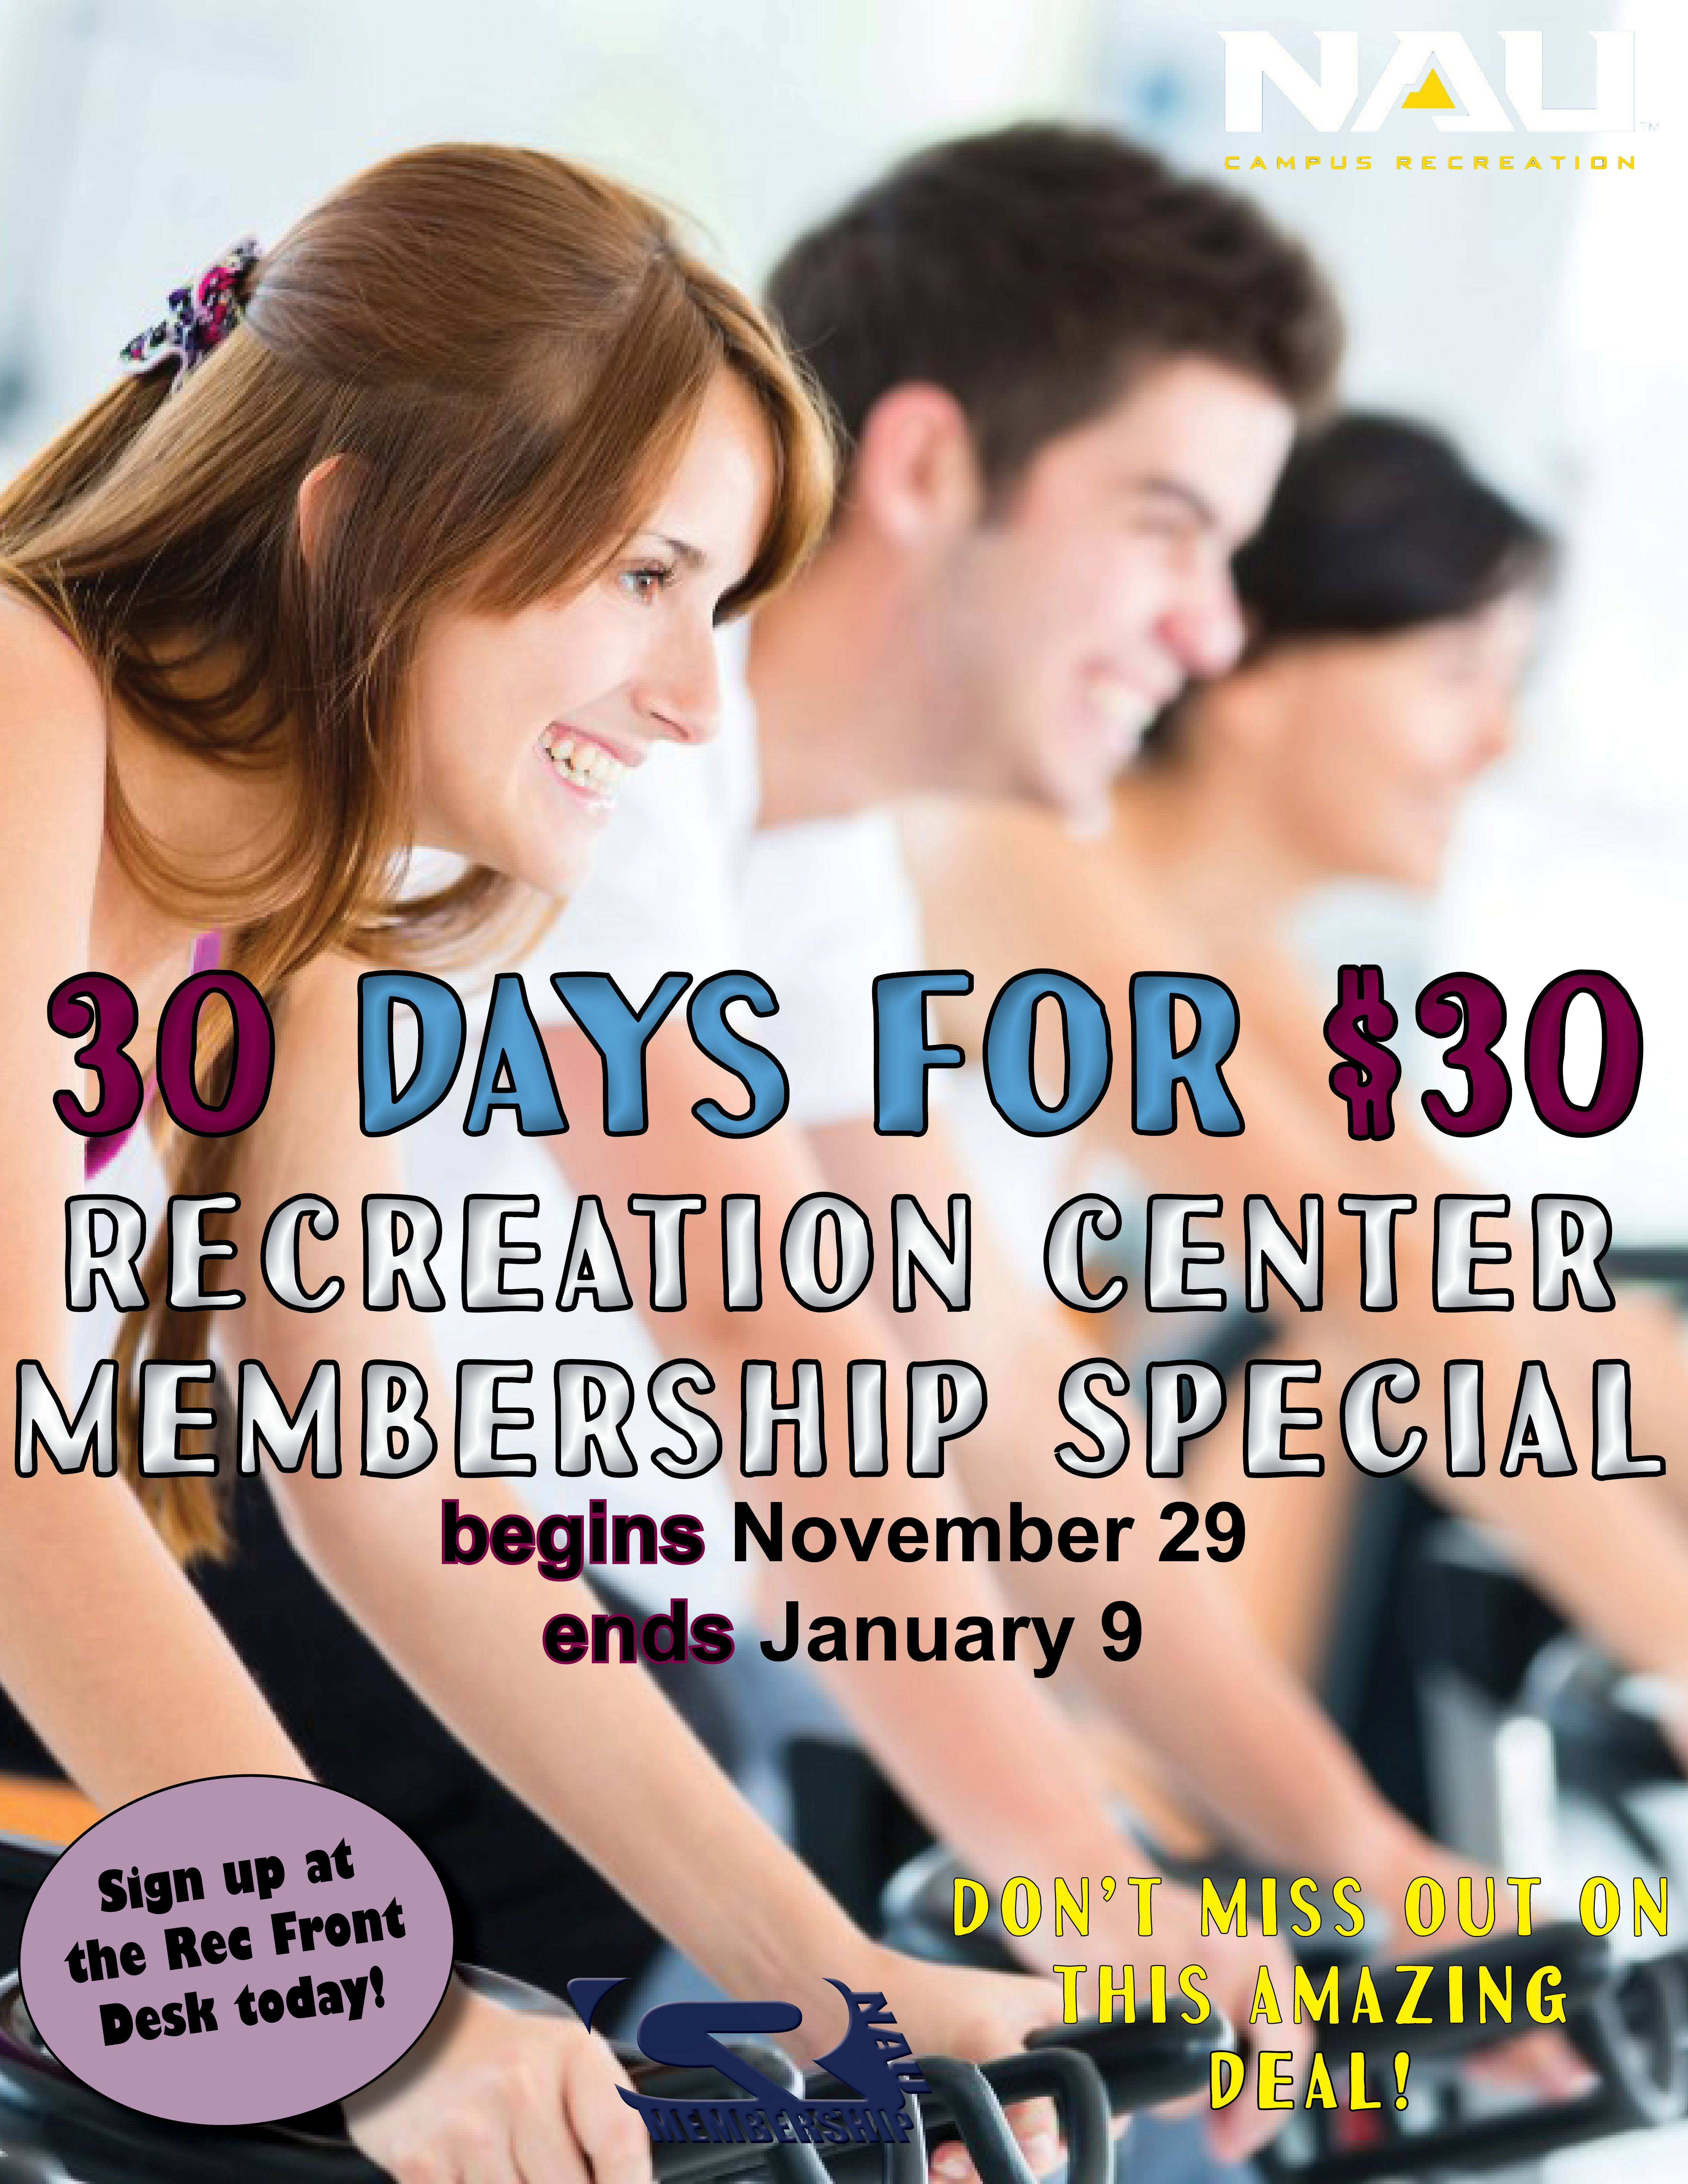 30 days for $30 Recreation Center membership special begins November 29 end January 9